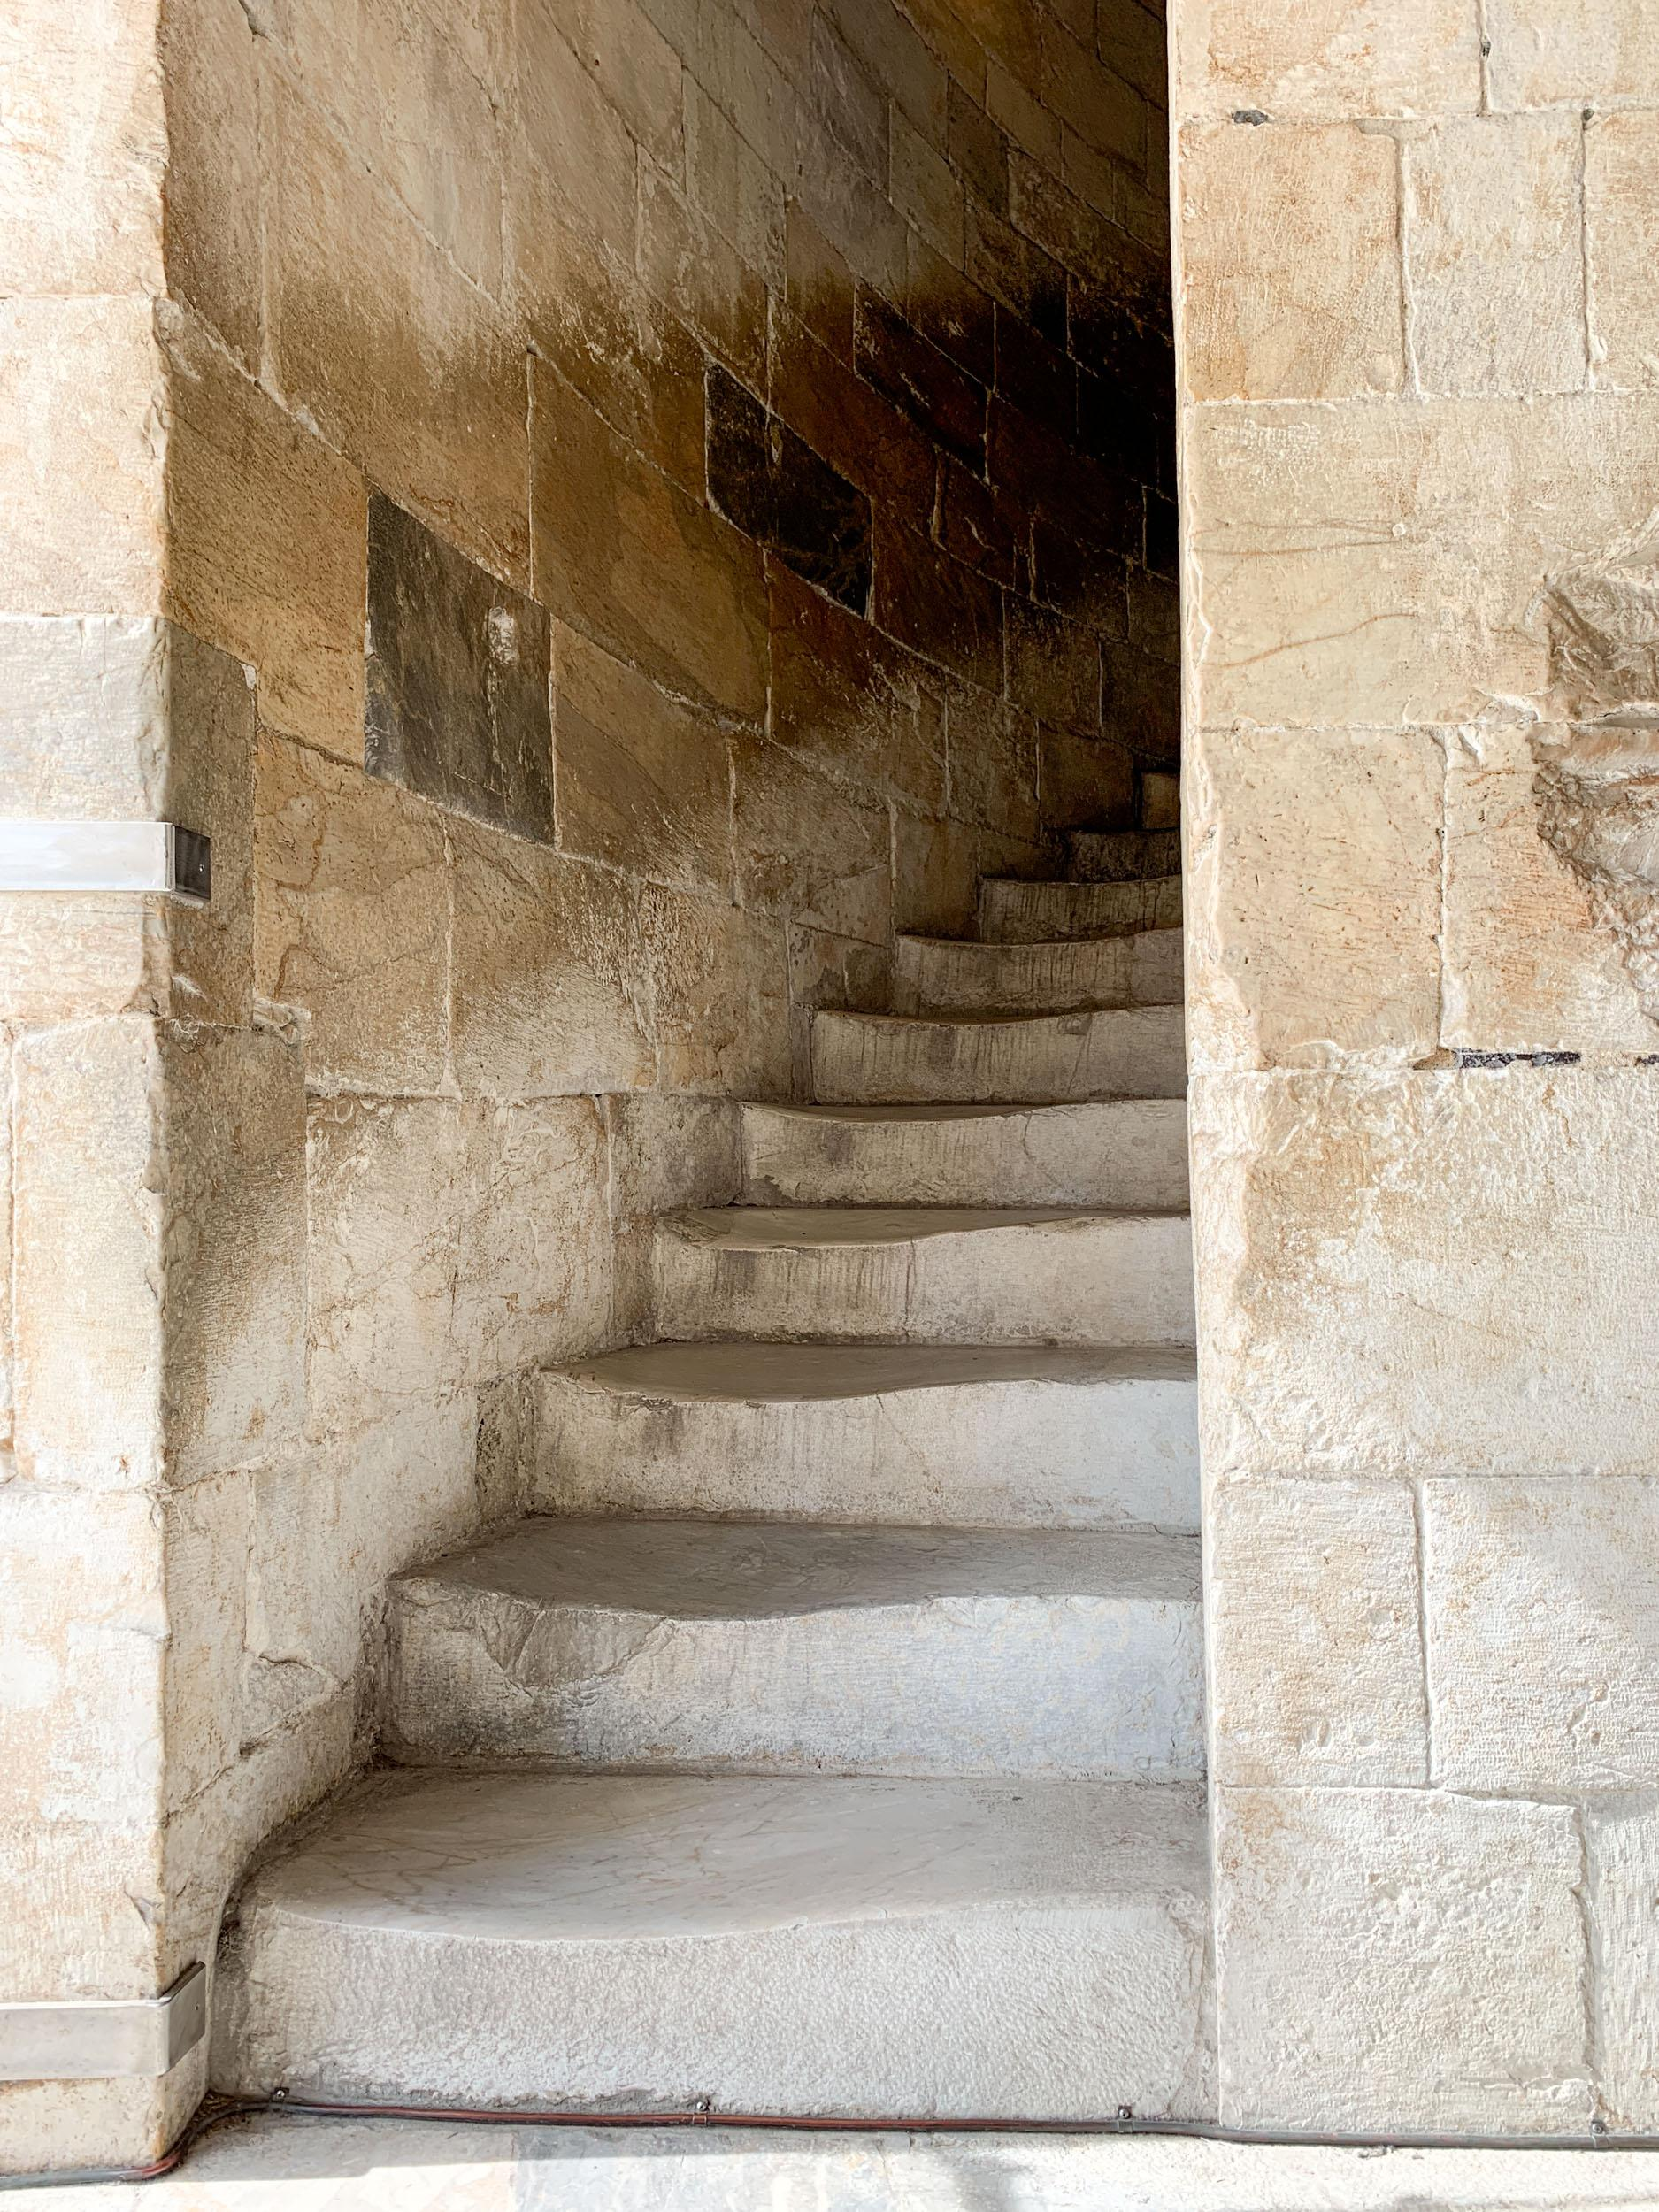 Staircase in the Leaning Tower of Pisa